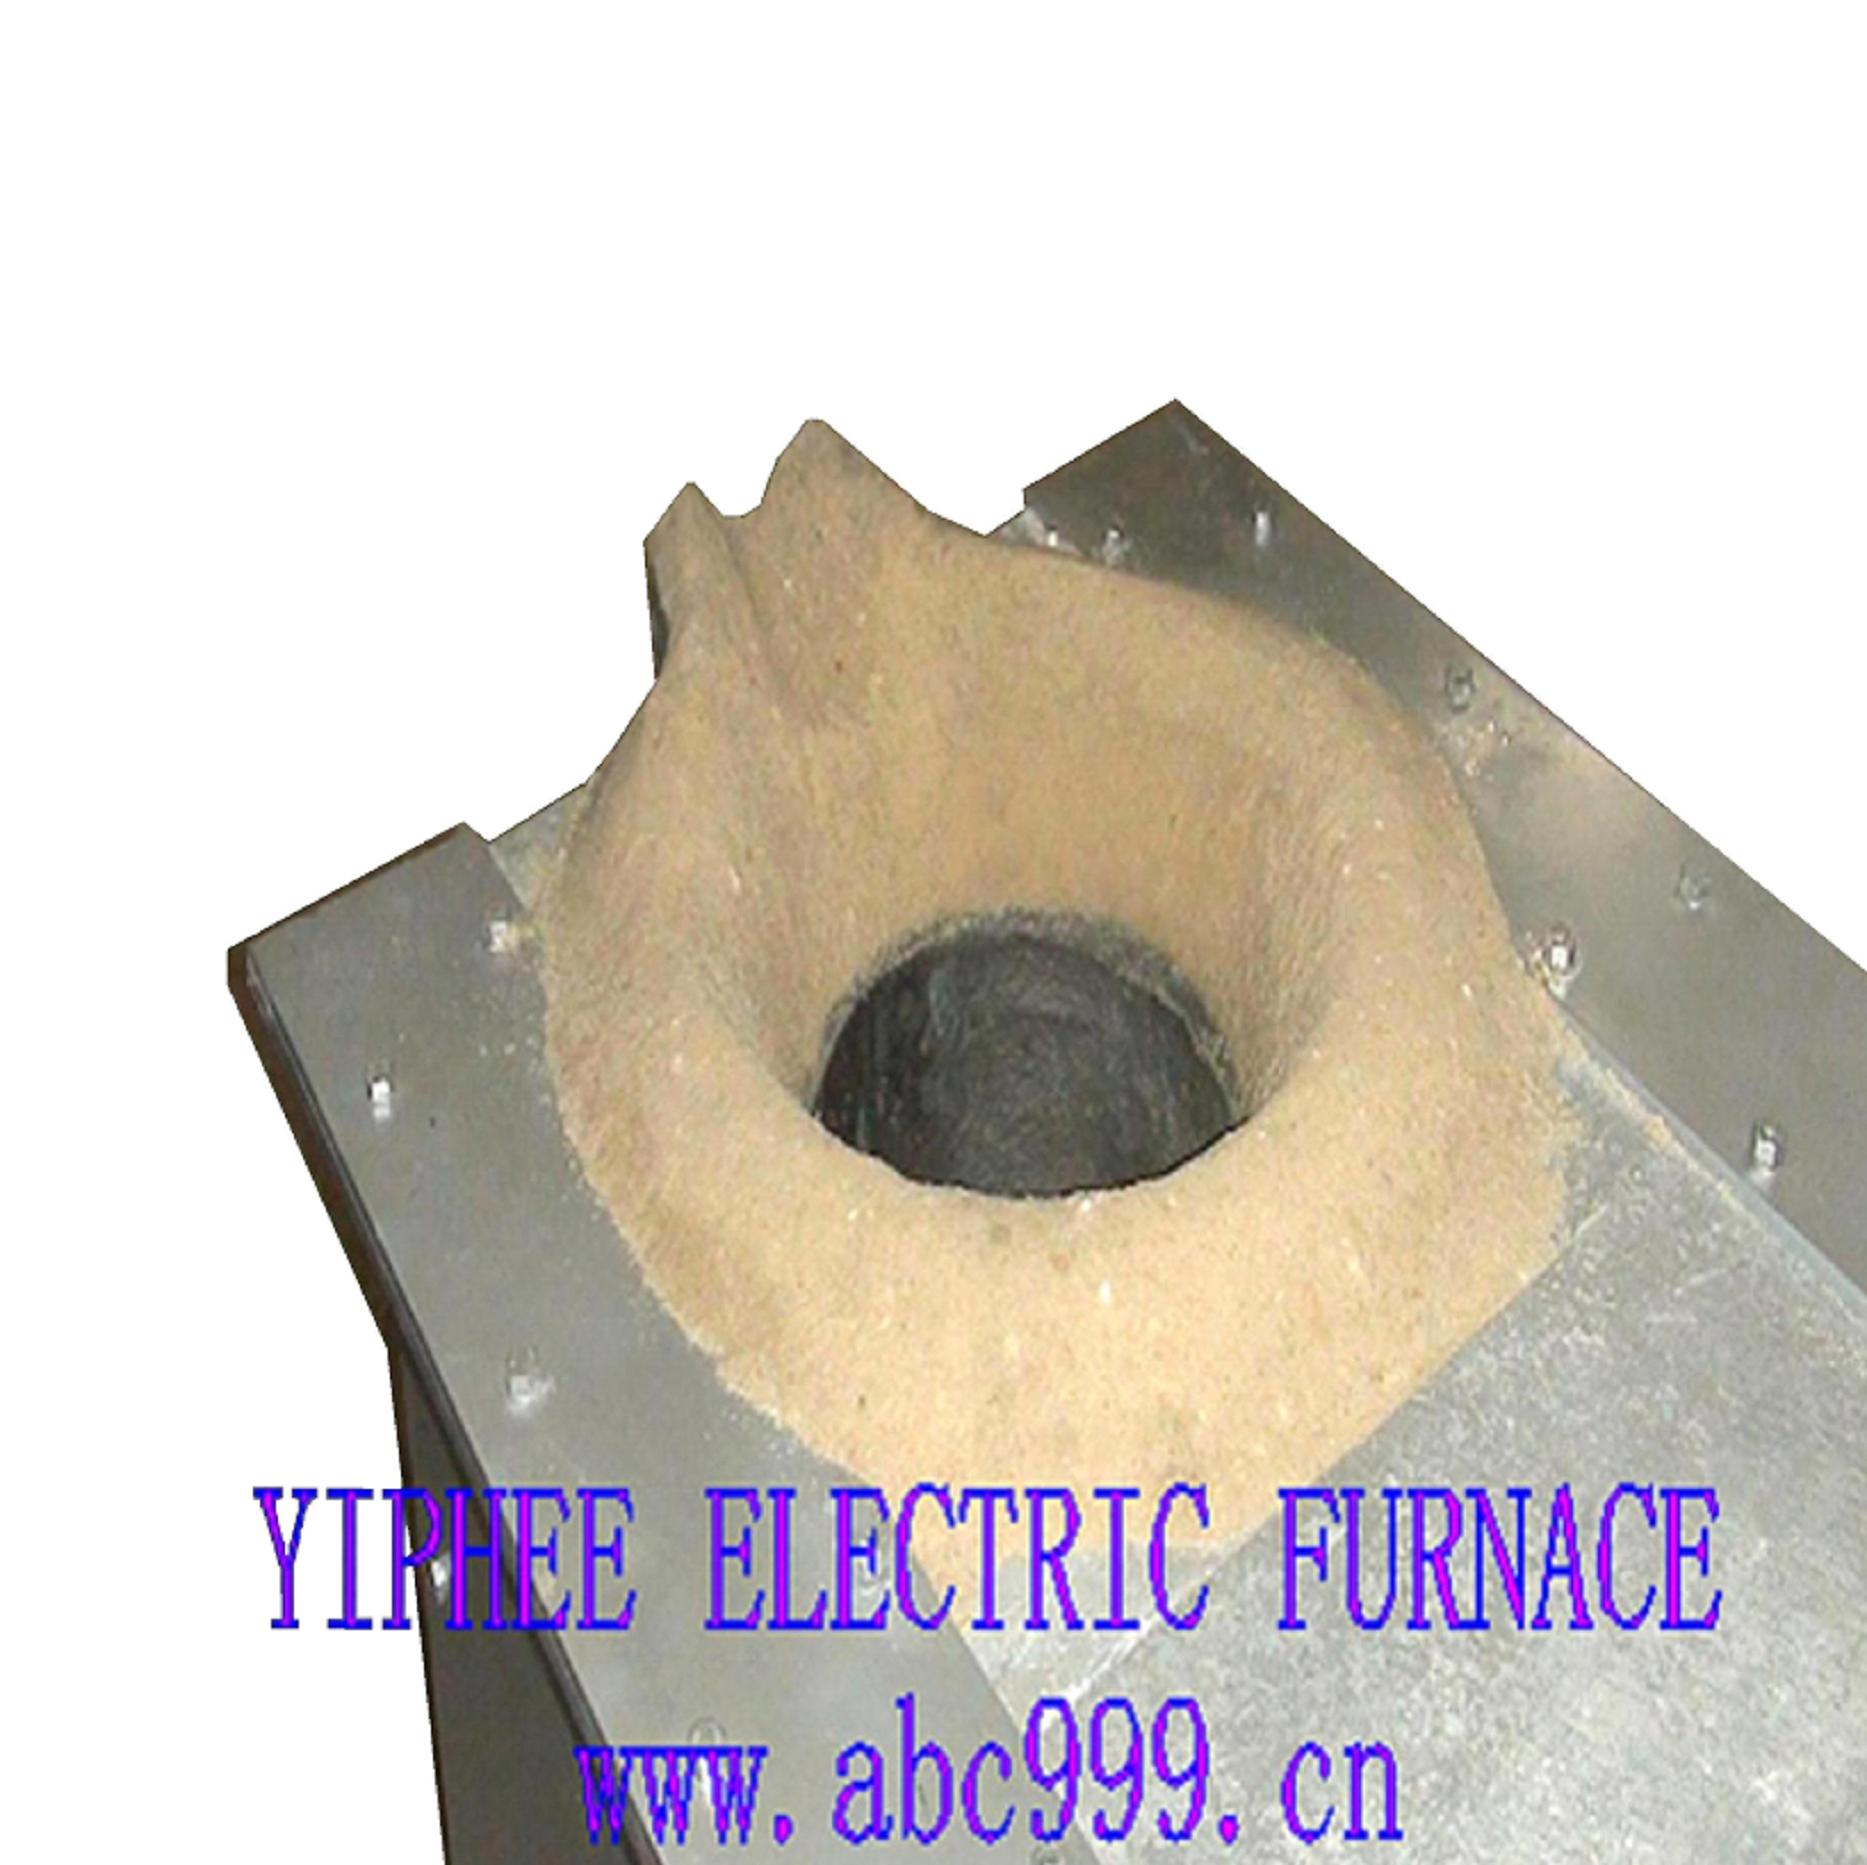 250Kg induction furnace